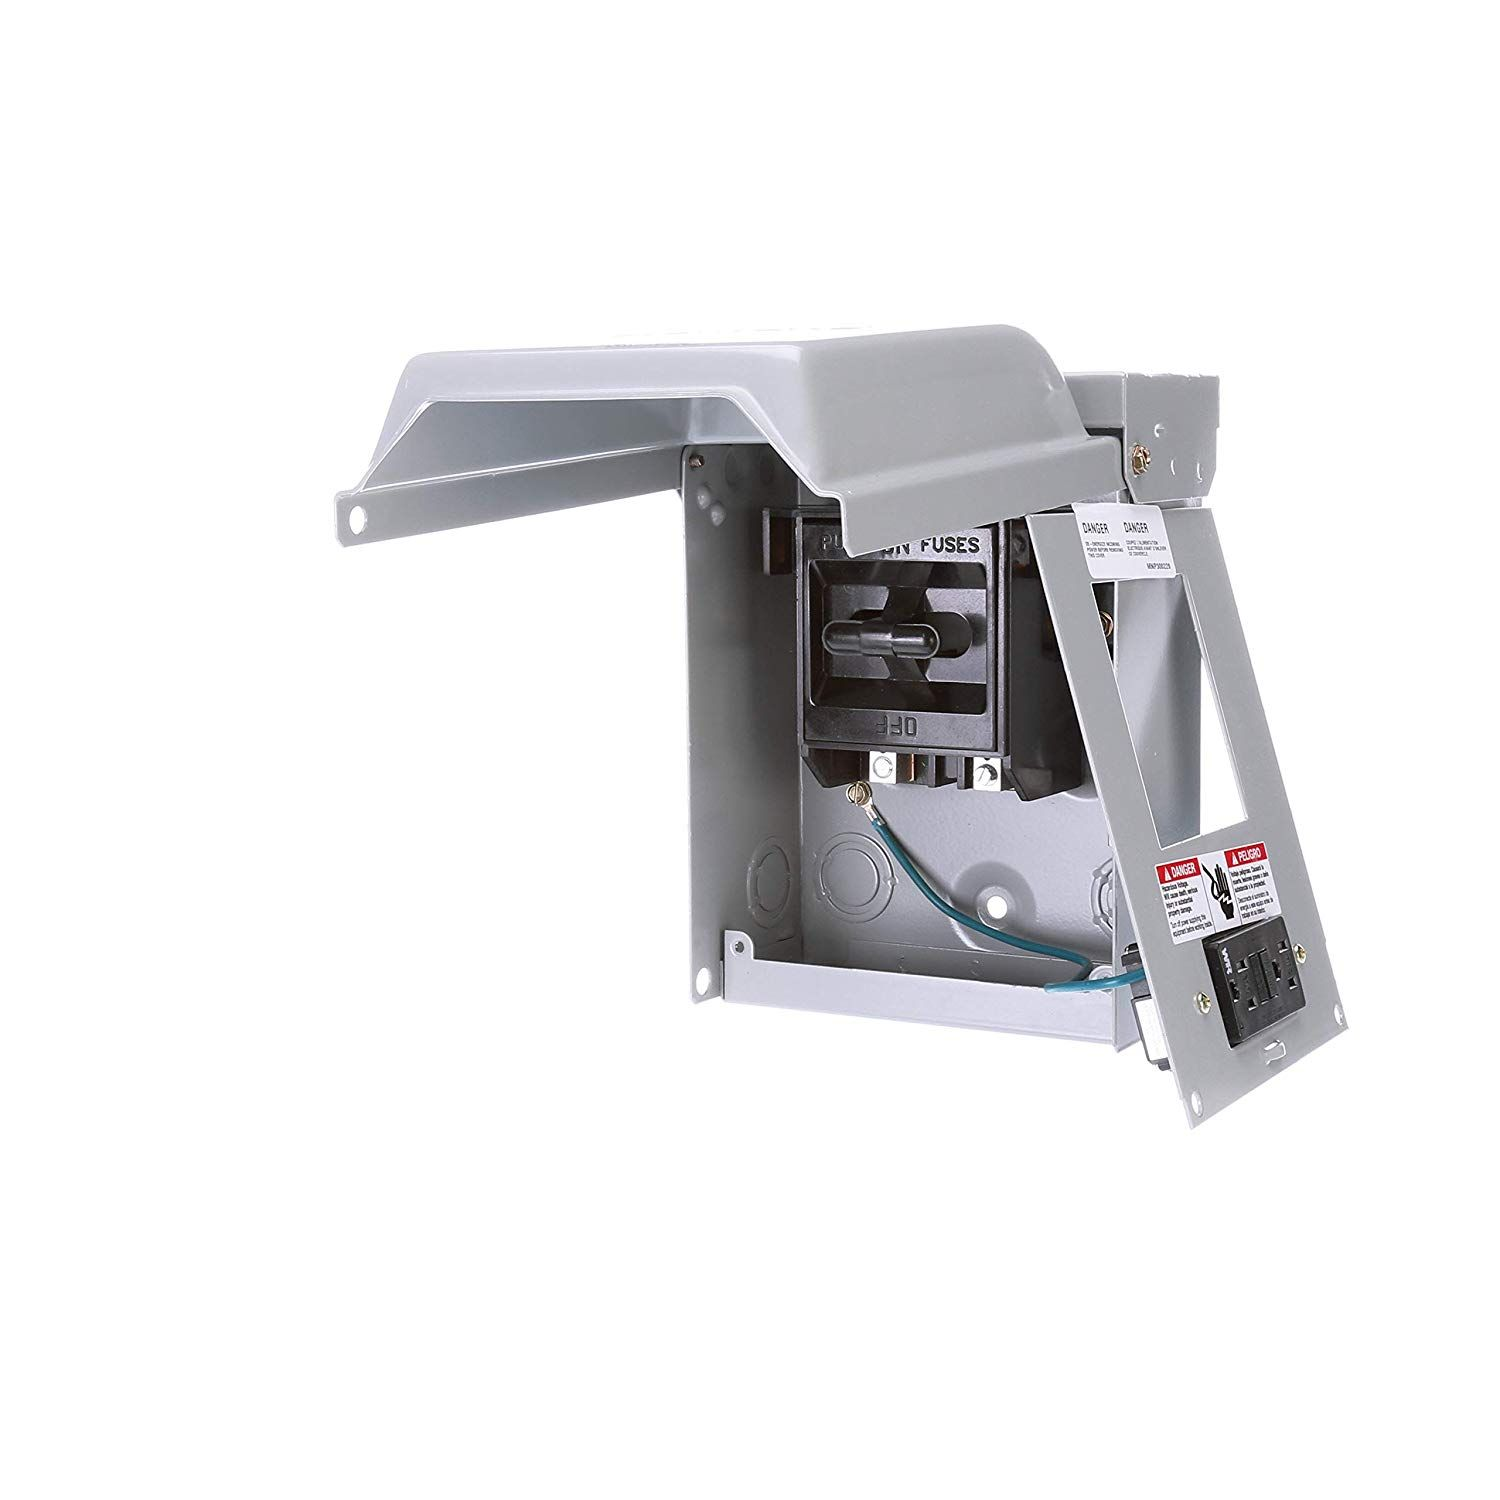 Siemens Wf2030gfci 30 Amp Fusible Ac Disconnect With Gfi Receptacle Want Additional Info Click On The Image This Is An Affil Siemens Circuit Receptacles